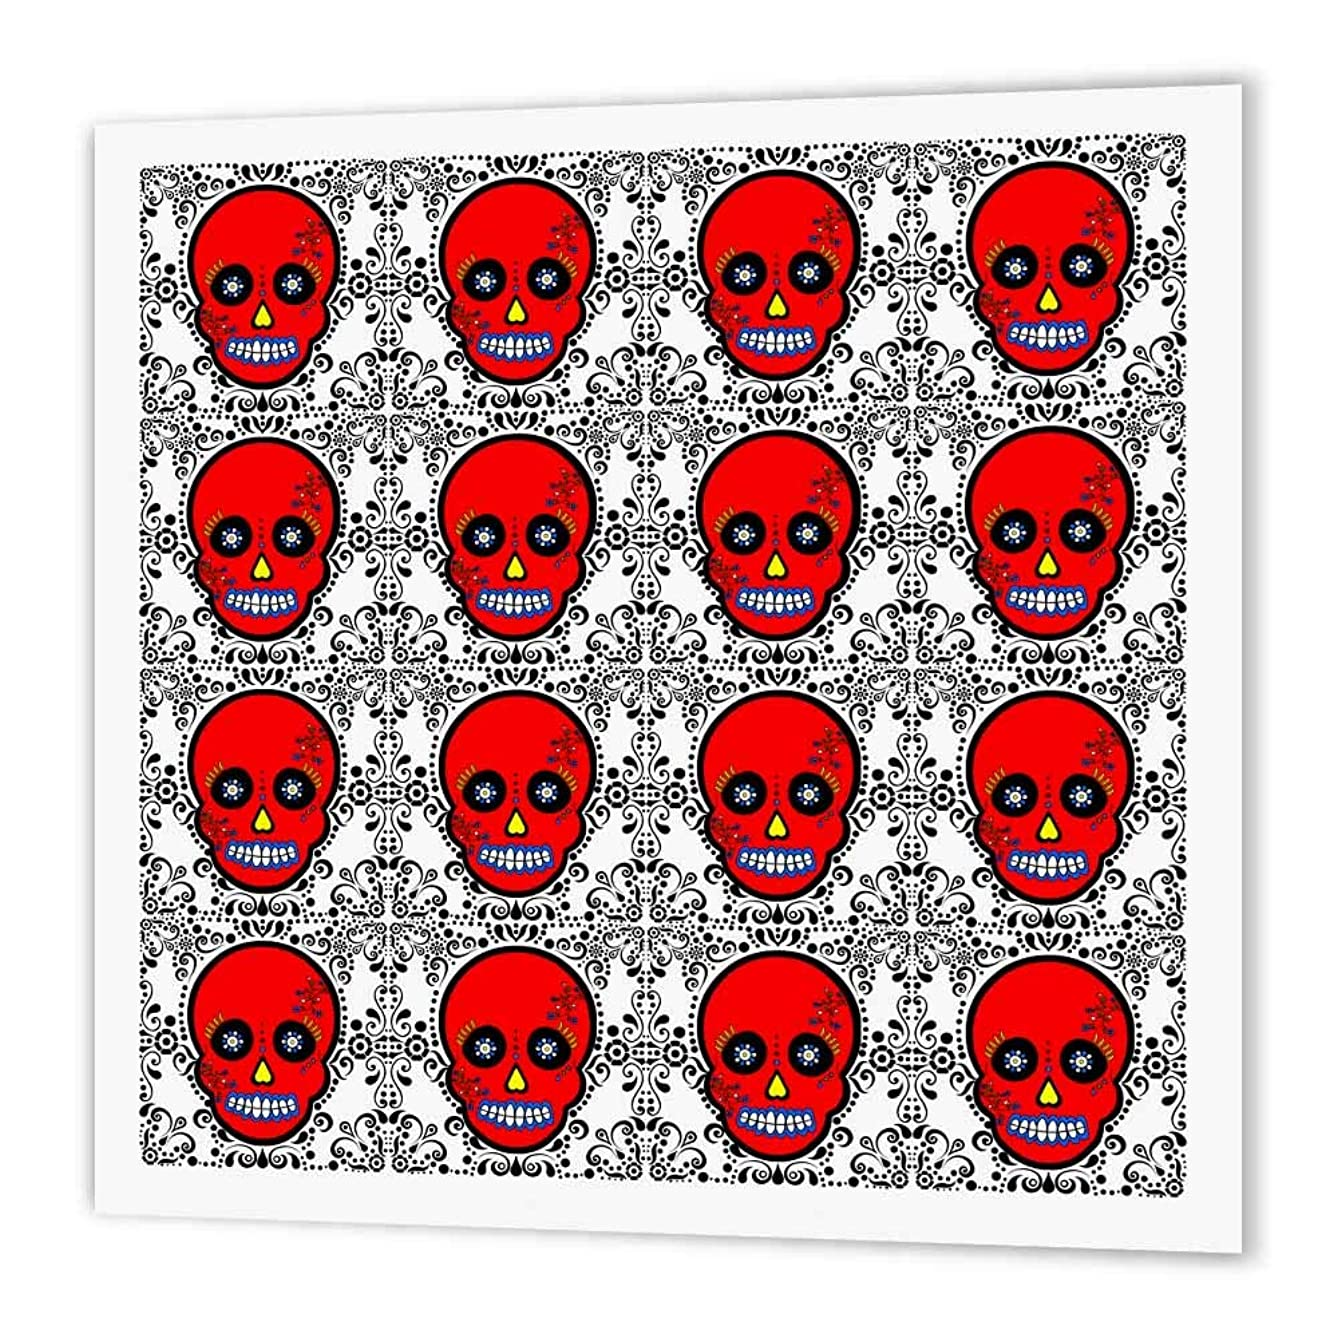 3dRose ht_28890_2 Day of The Dead Skull Dia De Los Muertos Sugar Skull Print Red-Iron on Heat Transfer Paper for White Material, 6 by 6-Inch